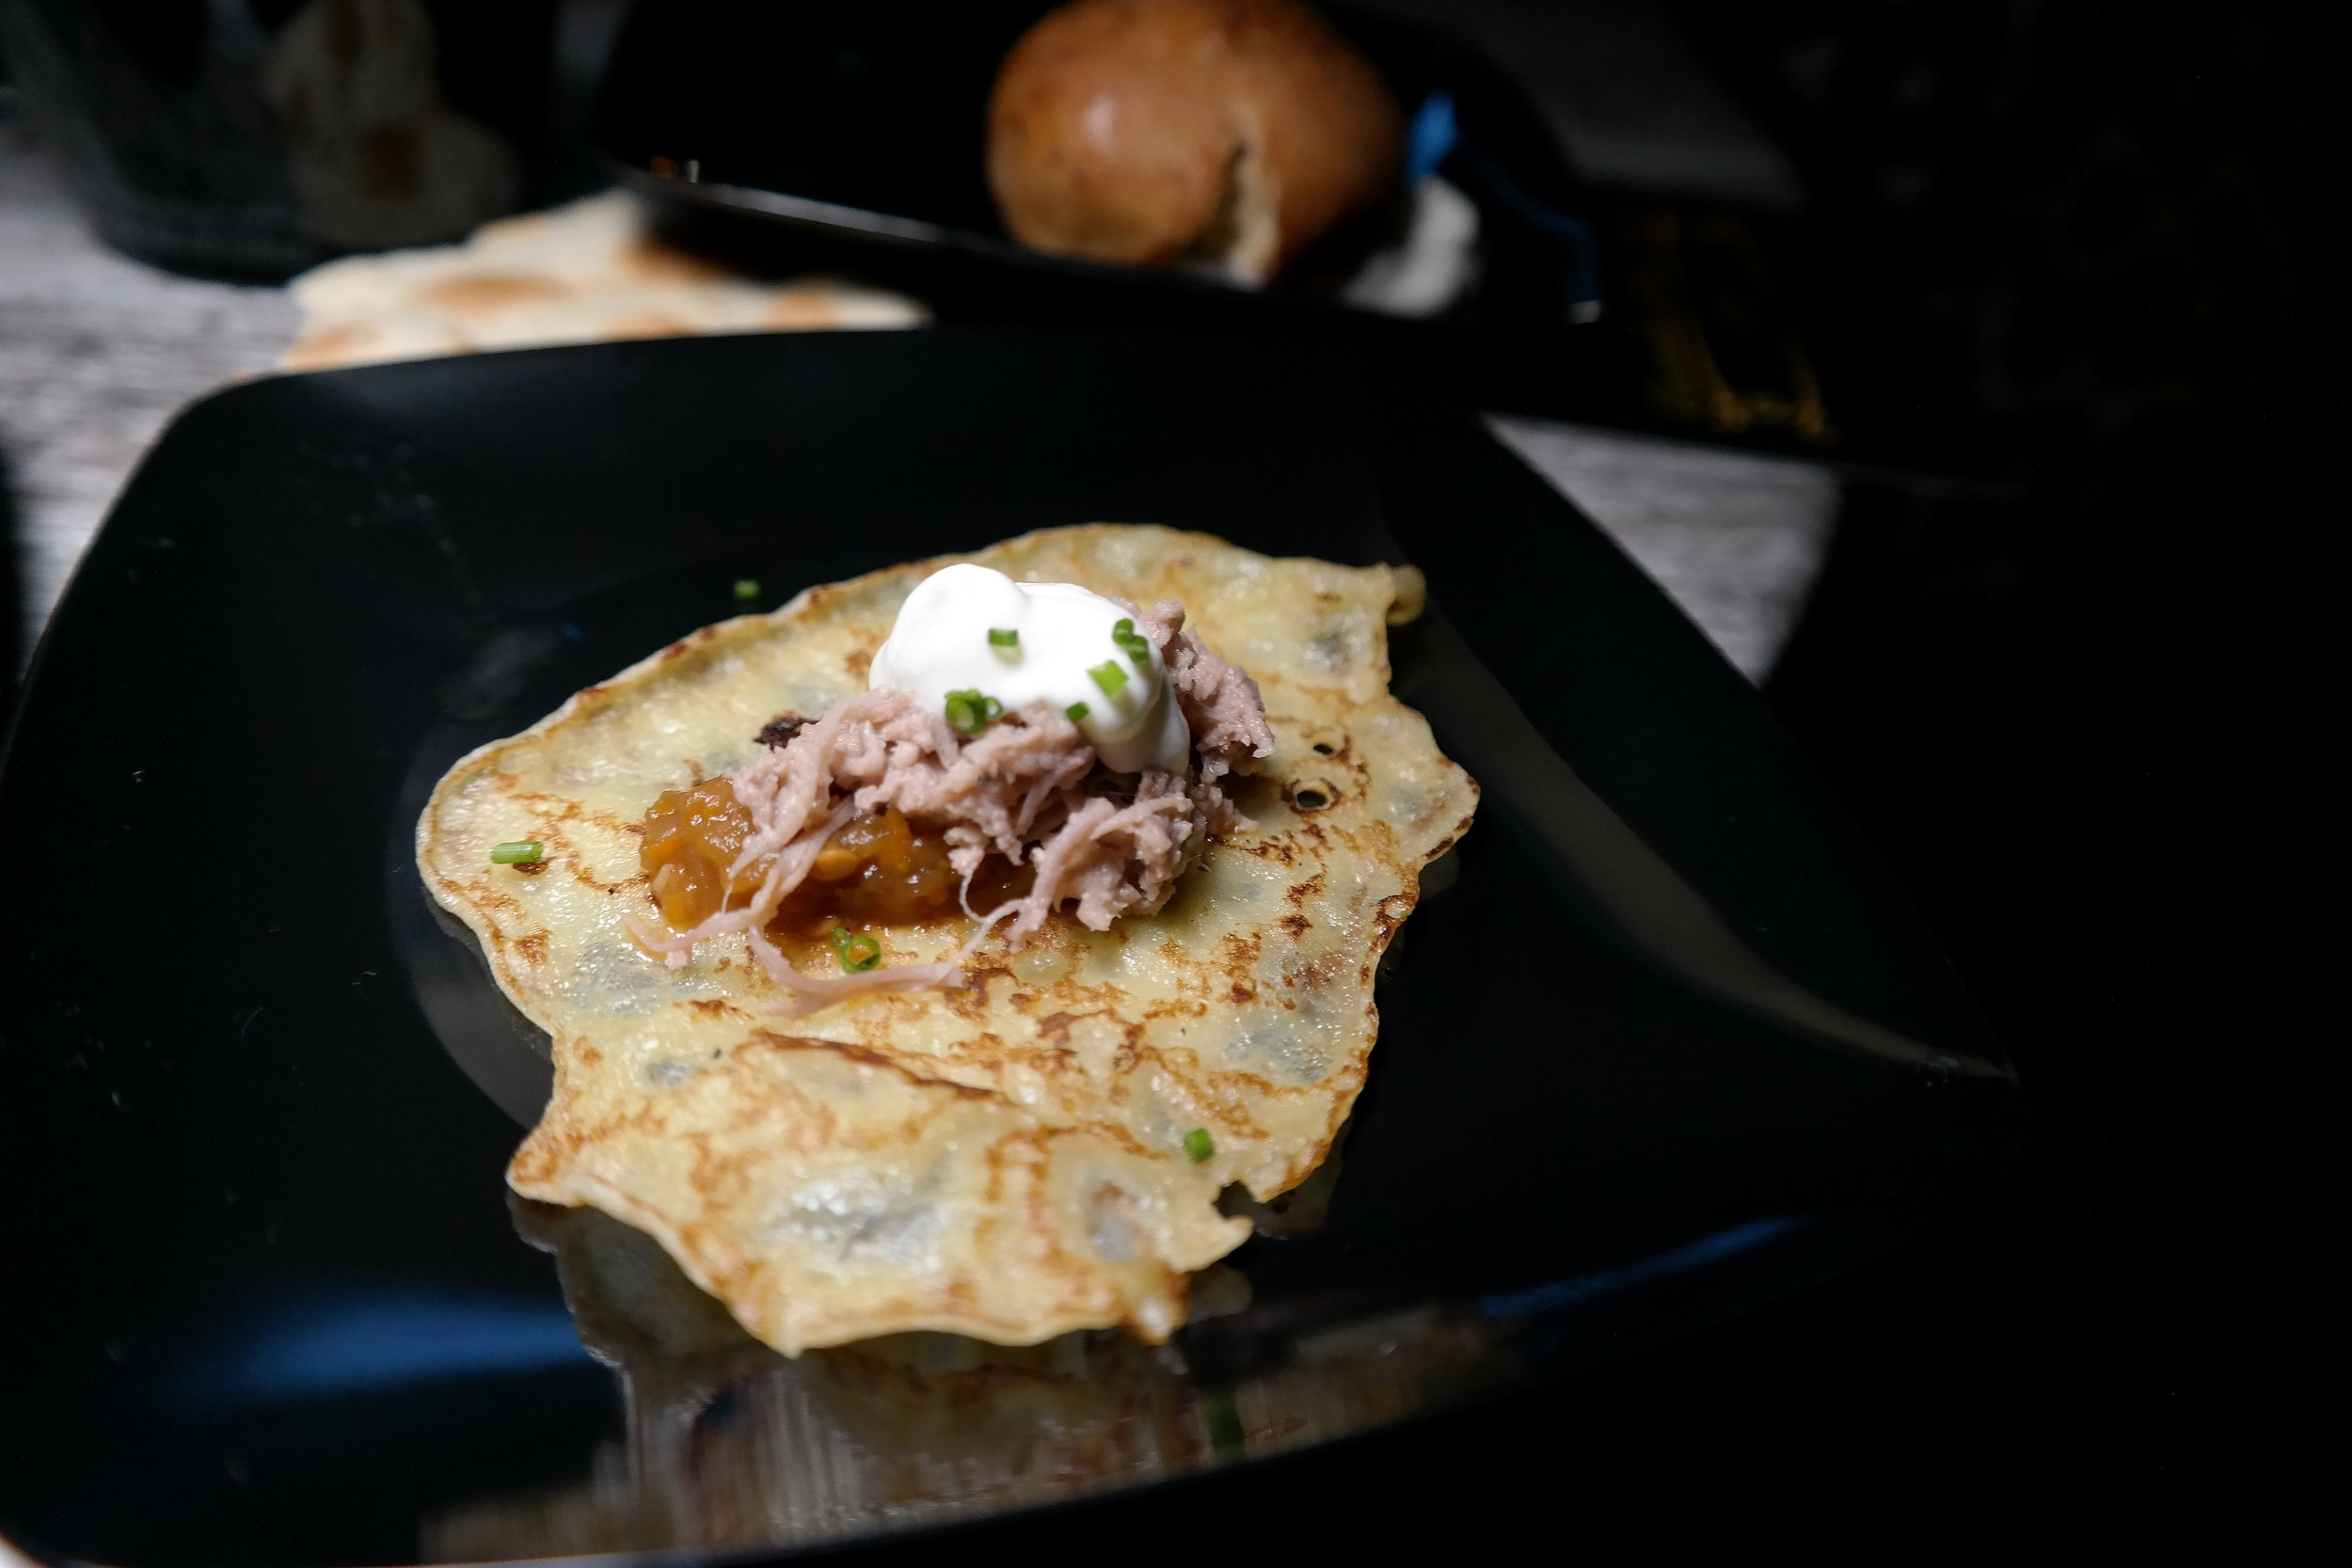 Crepe with roasted duck, lujetenica (chutney), semetana and chives